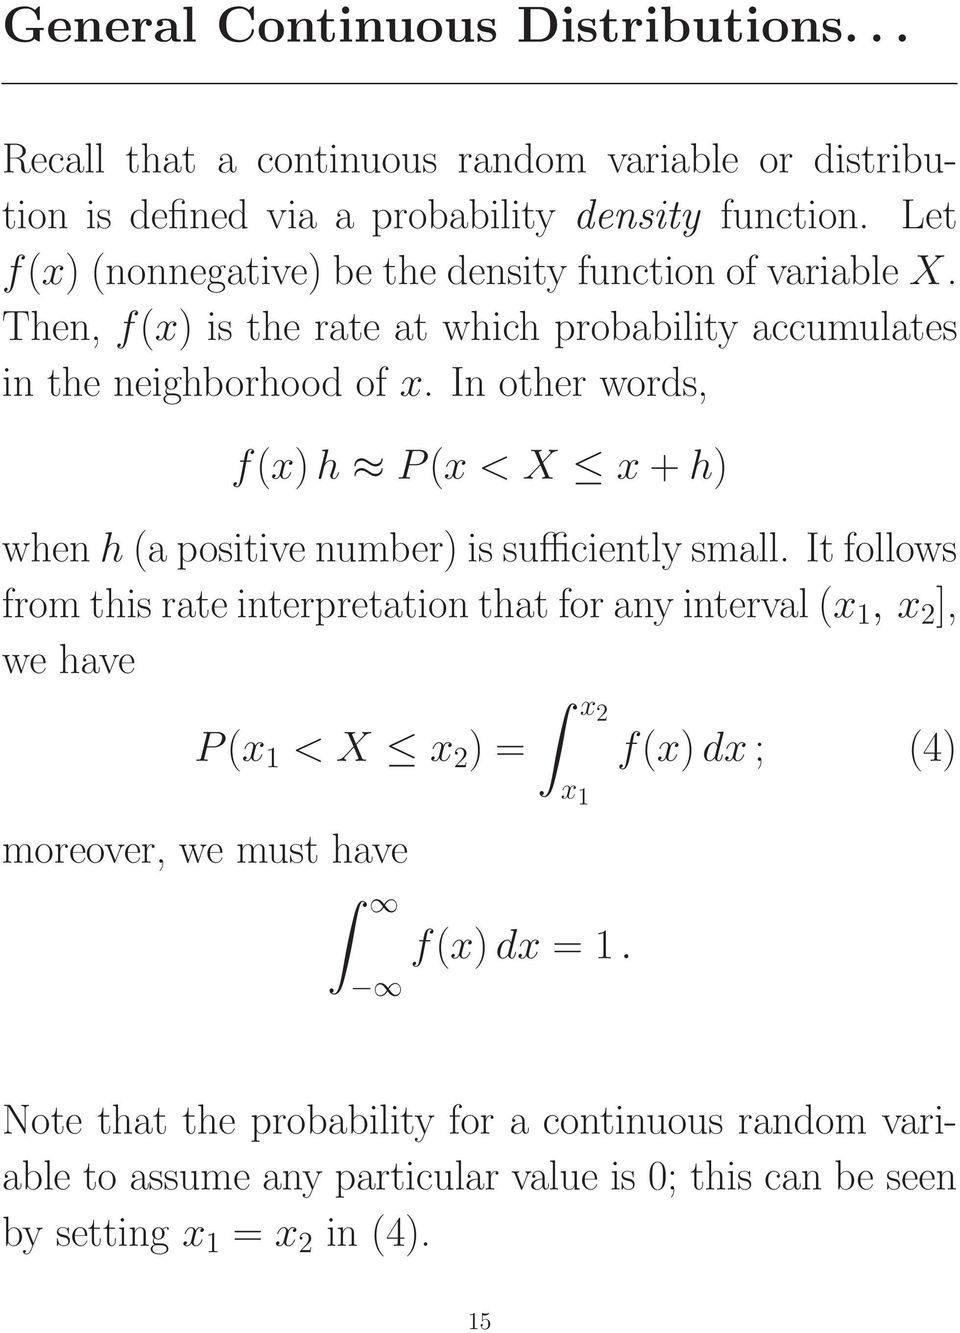 In other words, f(x) h P(x < X x + h) when h (a positive number) is sufficiently small.